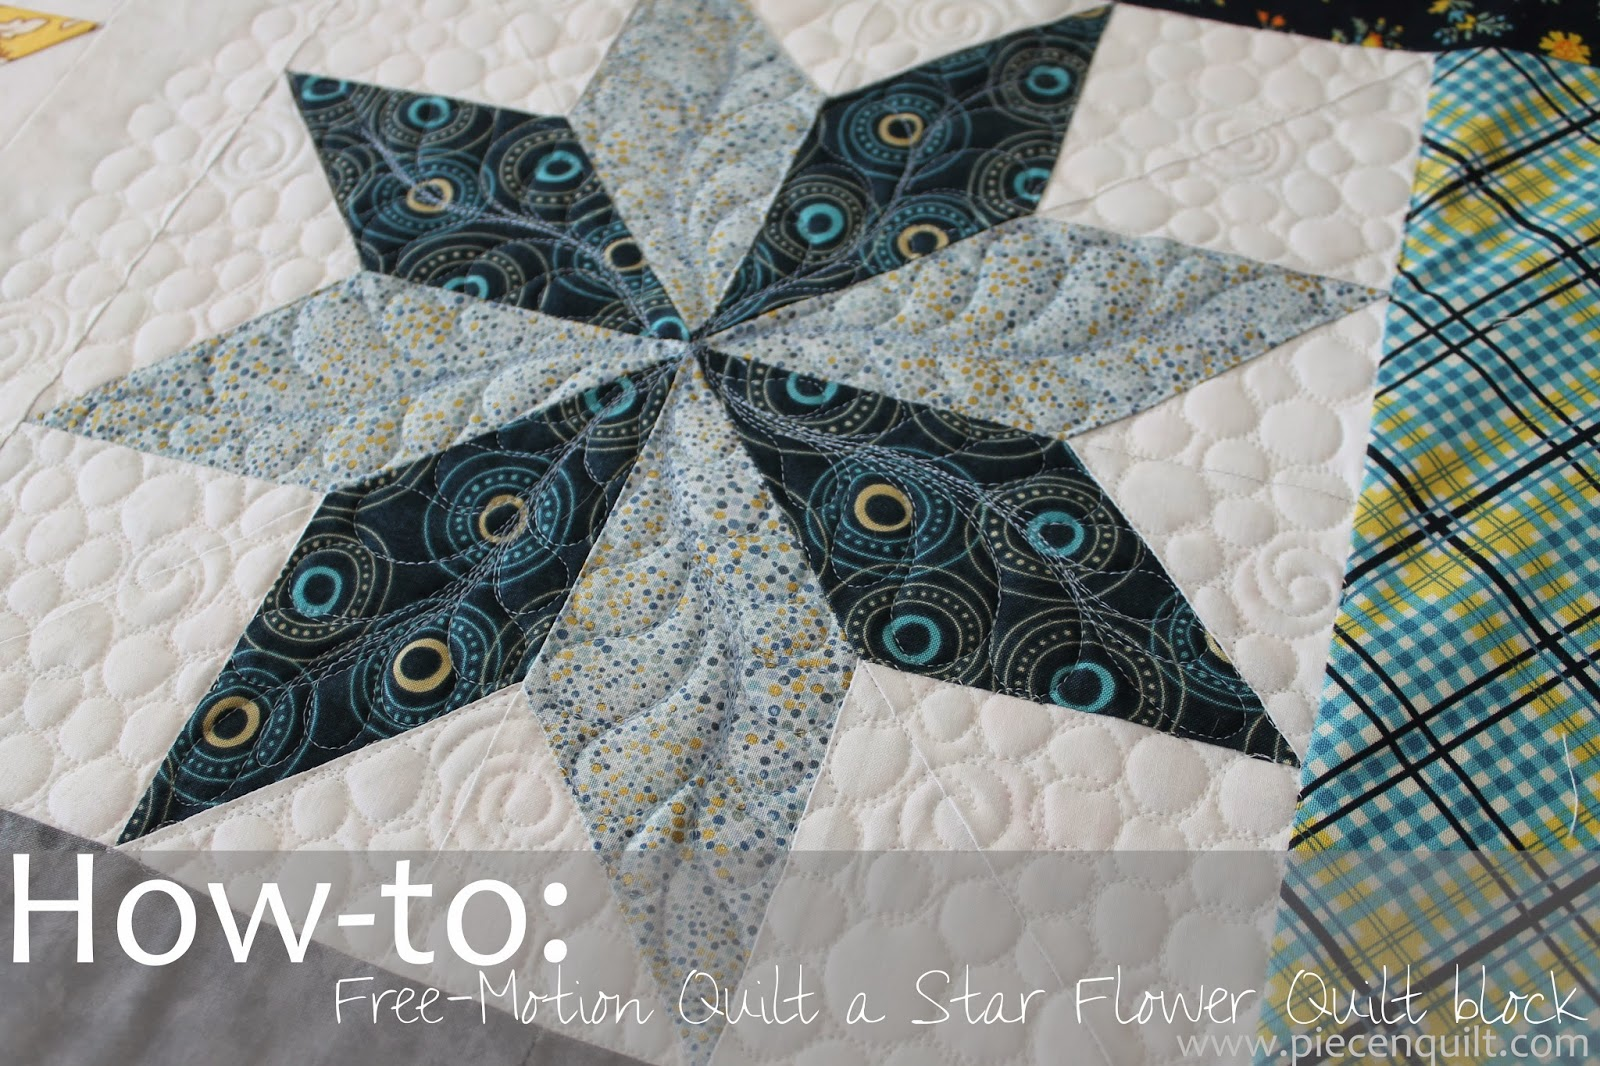 Piece N Quilt: How-to: Free-Motion Quilt a Star Flower Quilt Block